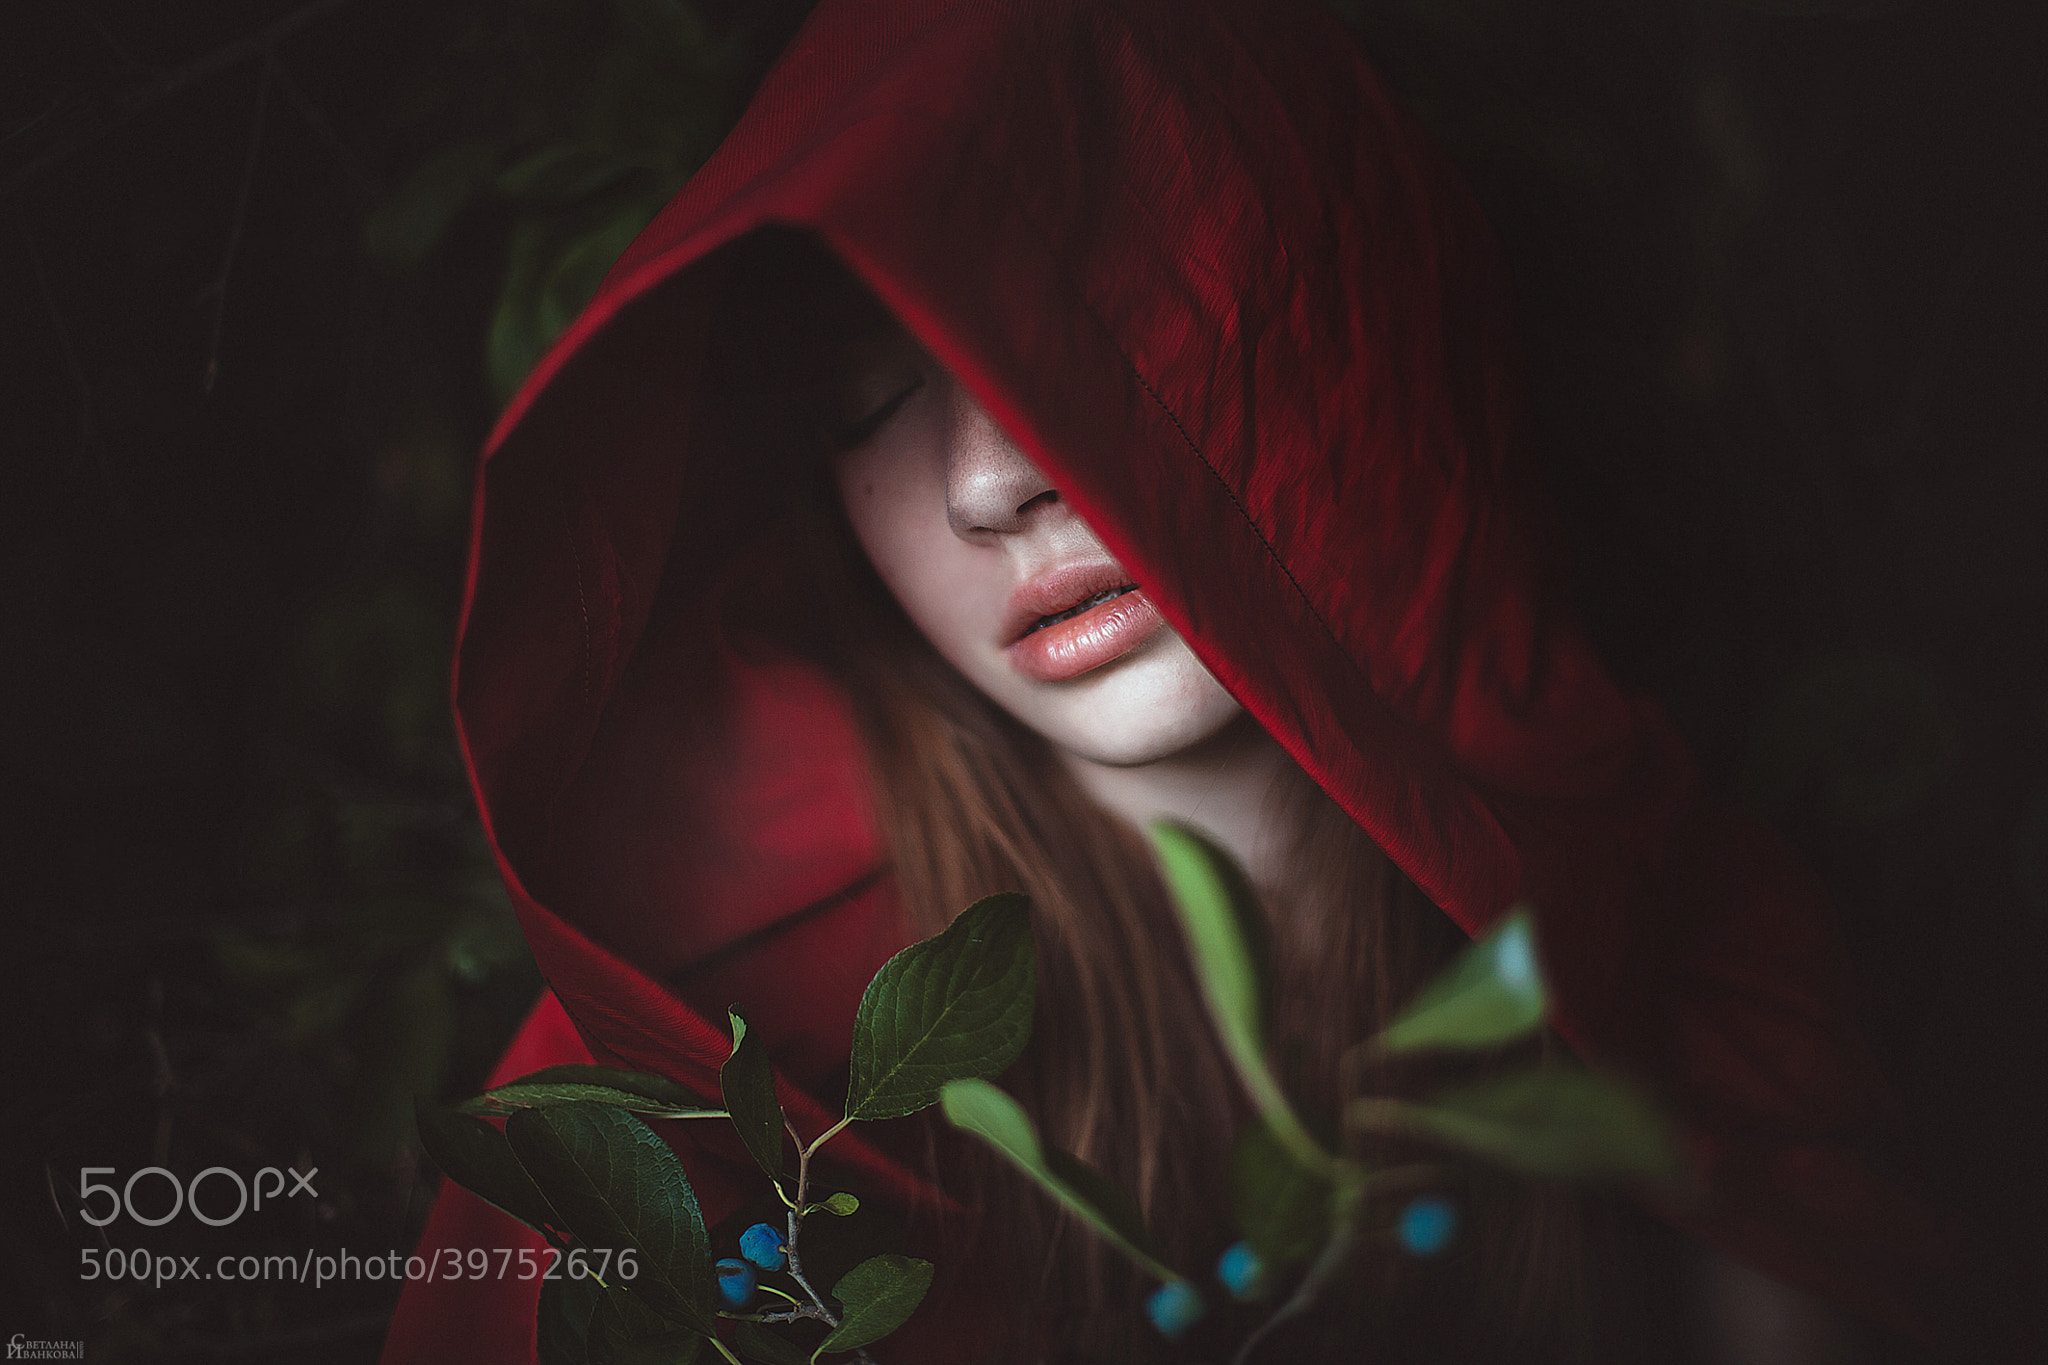 Photograph red2 by Светлана Иванкова on 500px